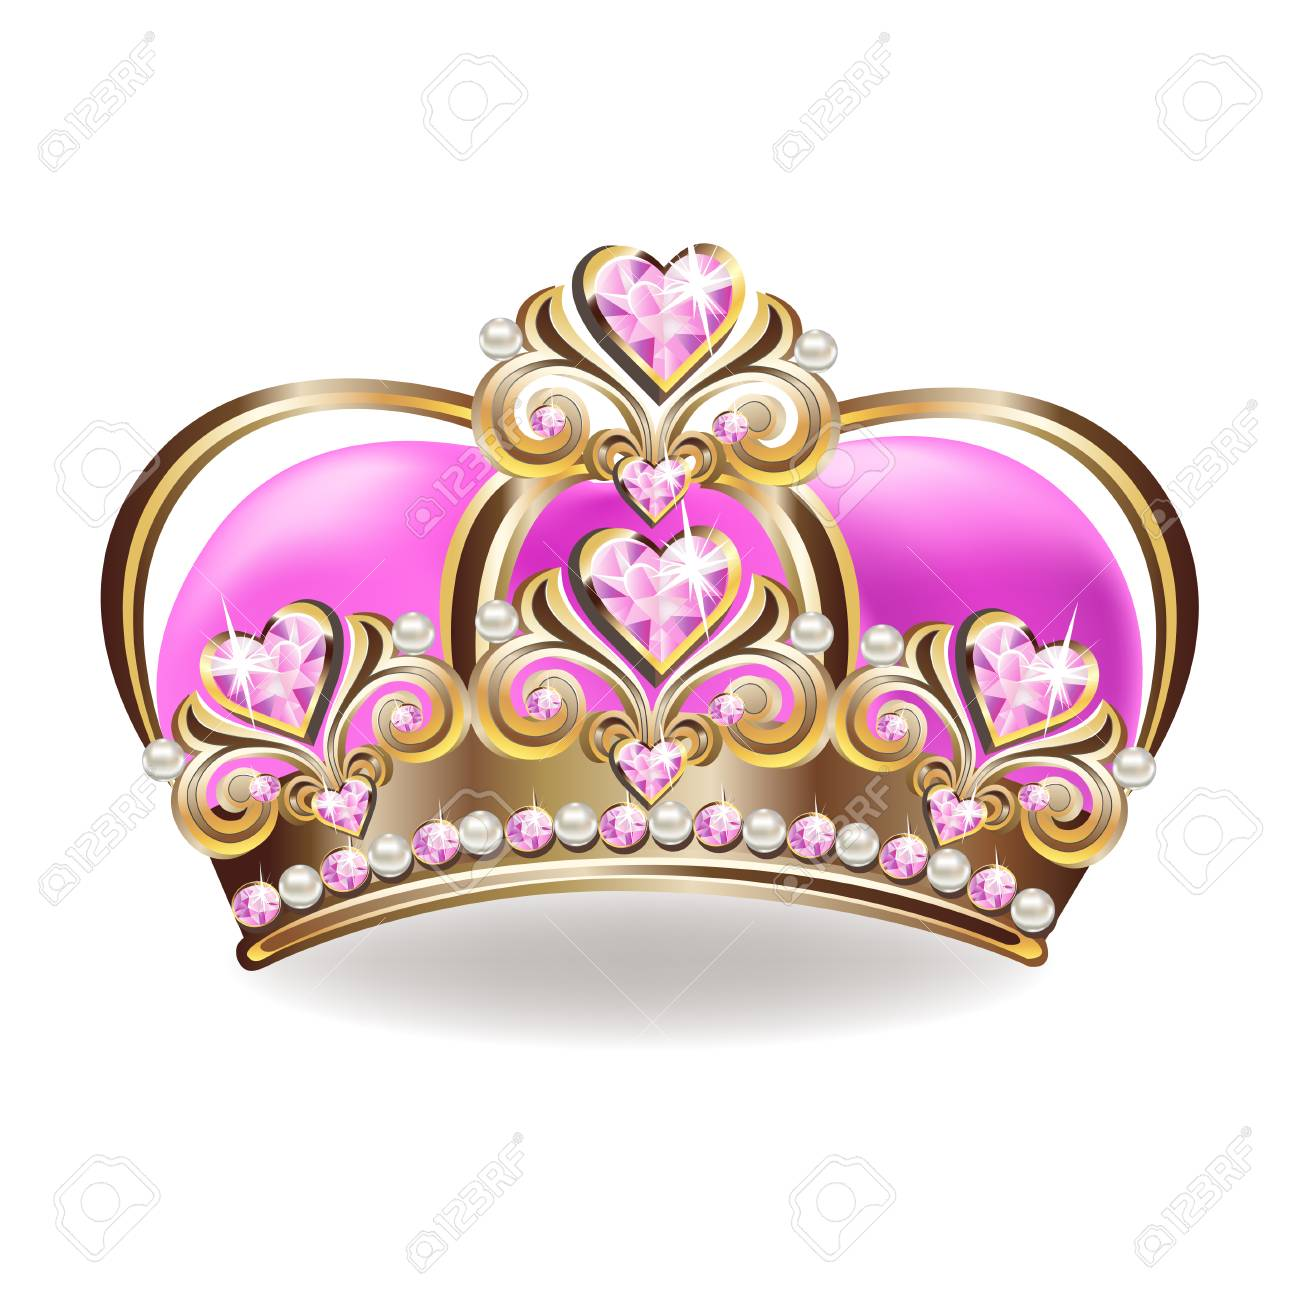 Crown of a princess with pearls and pink gemstones. Vector illustration. - 108812918